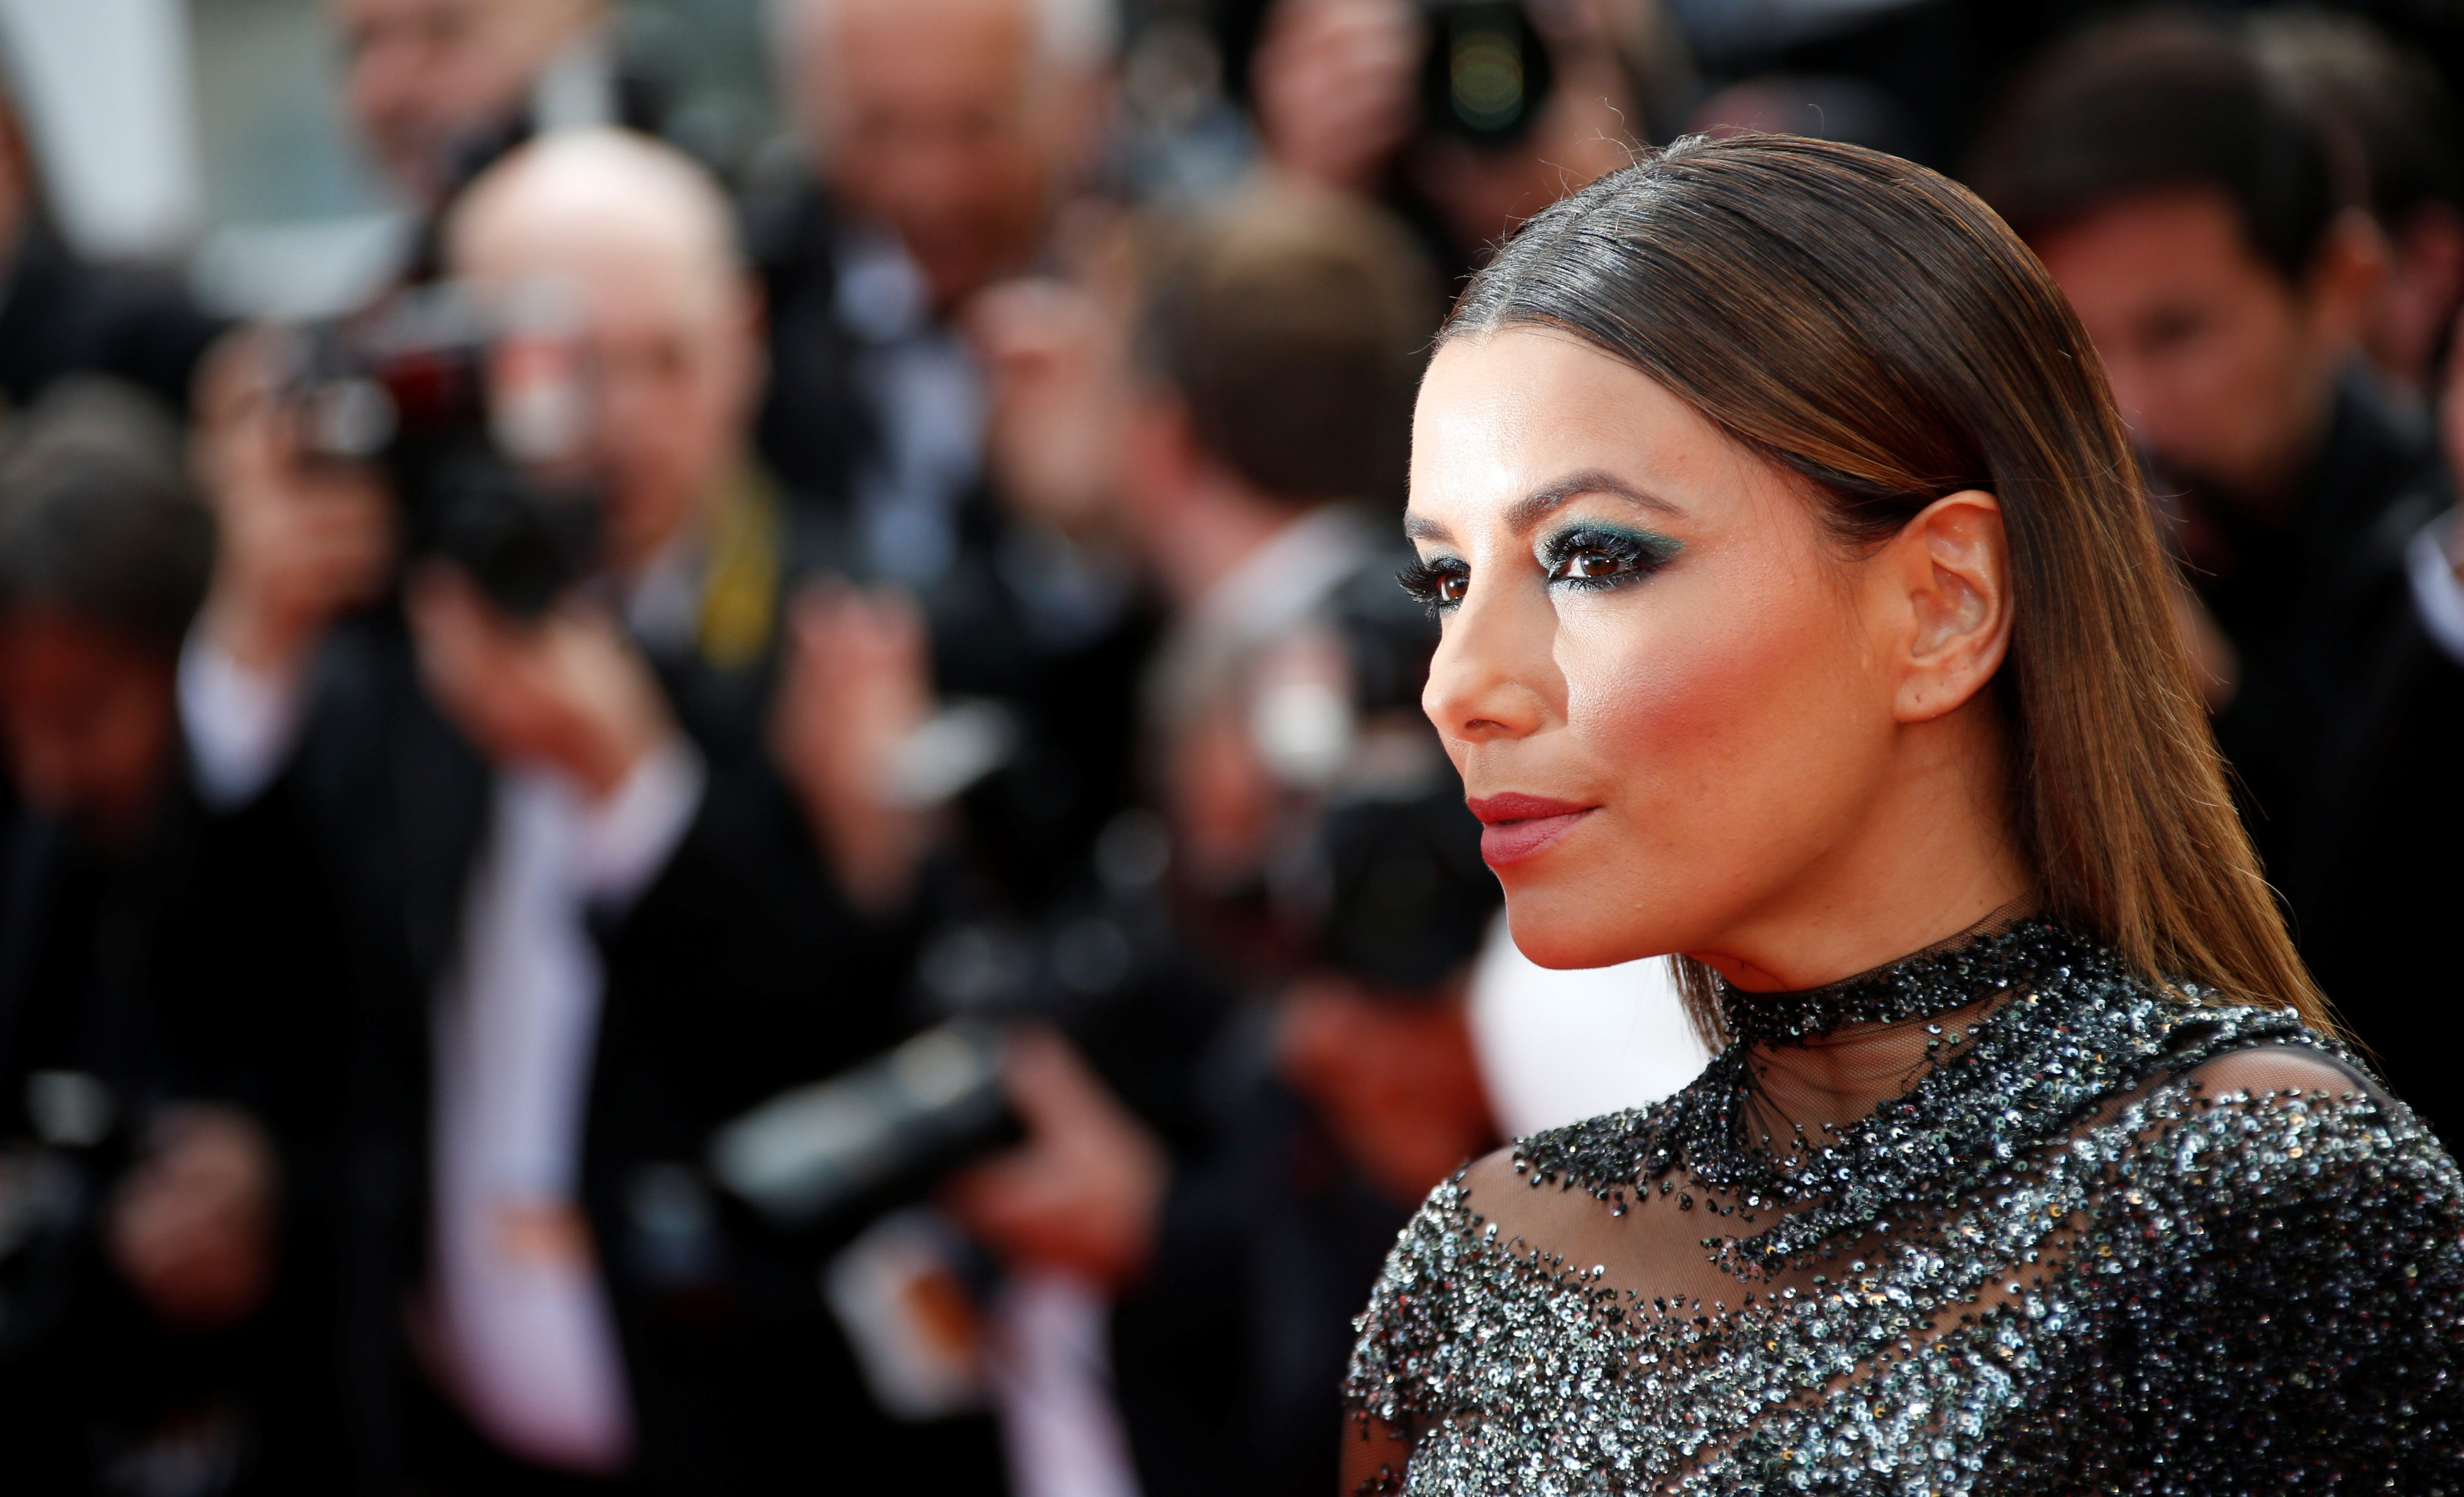 70th Cannes Film Festival – Event for the 70th Anniversary of the festival – Red Carpet Arrivals - Cannes, France. 23/05/2017. Model Eva Longoria poses. REUTERS/Jean-Paul Pelissier - RC122B72DE90